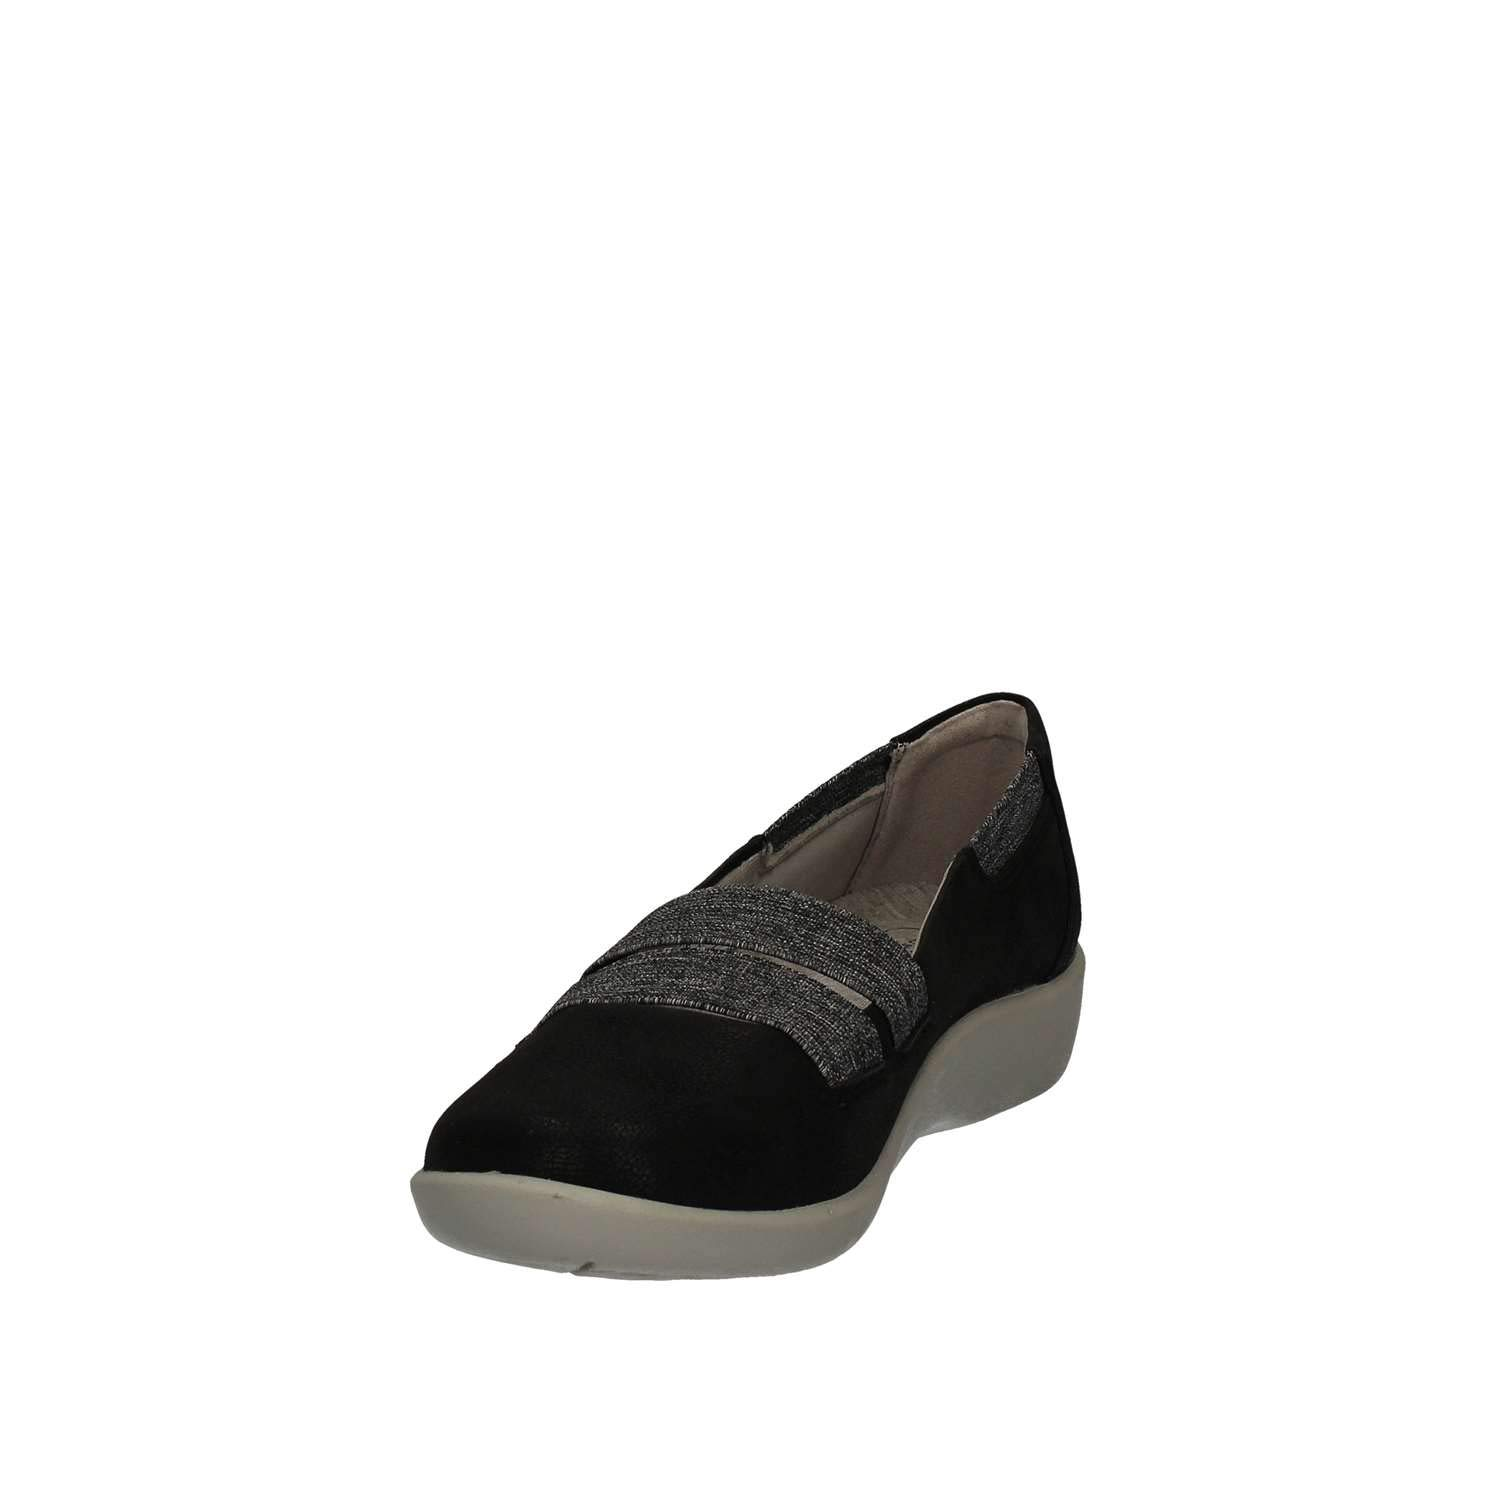 ff13aed3c11 Clarks Women s Sillian Rest Ballet Flats  Buy Online at Low Prices in India  - Amazon.in